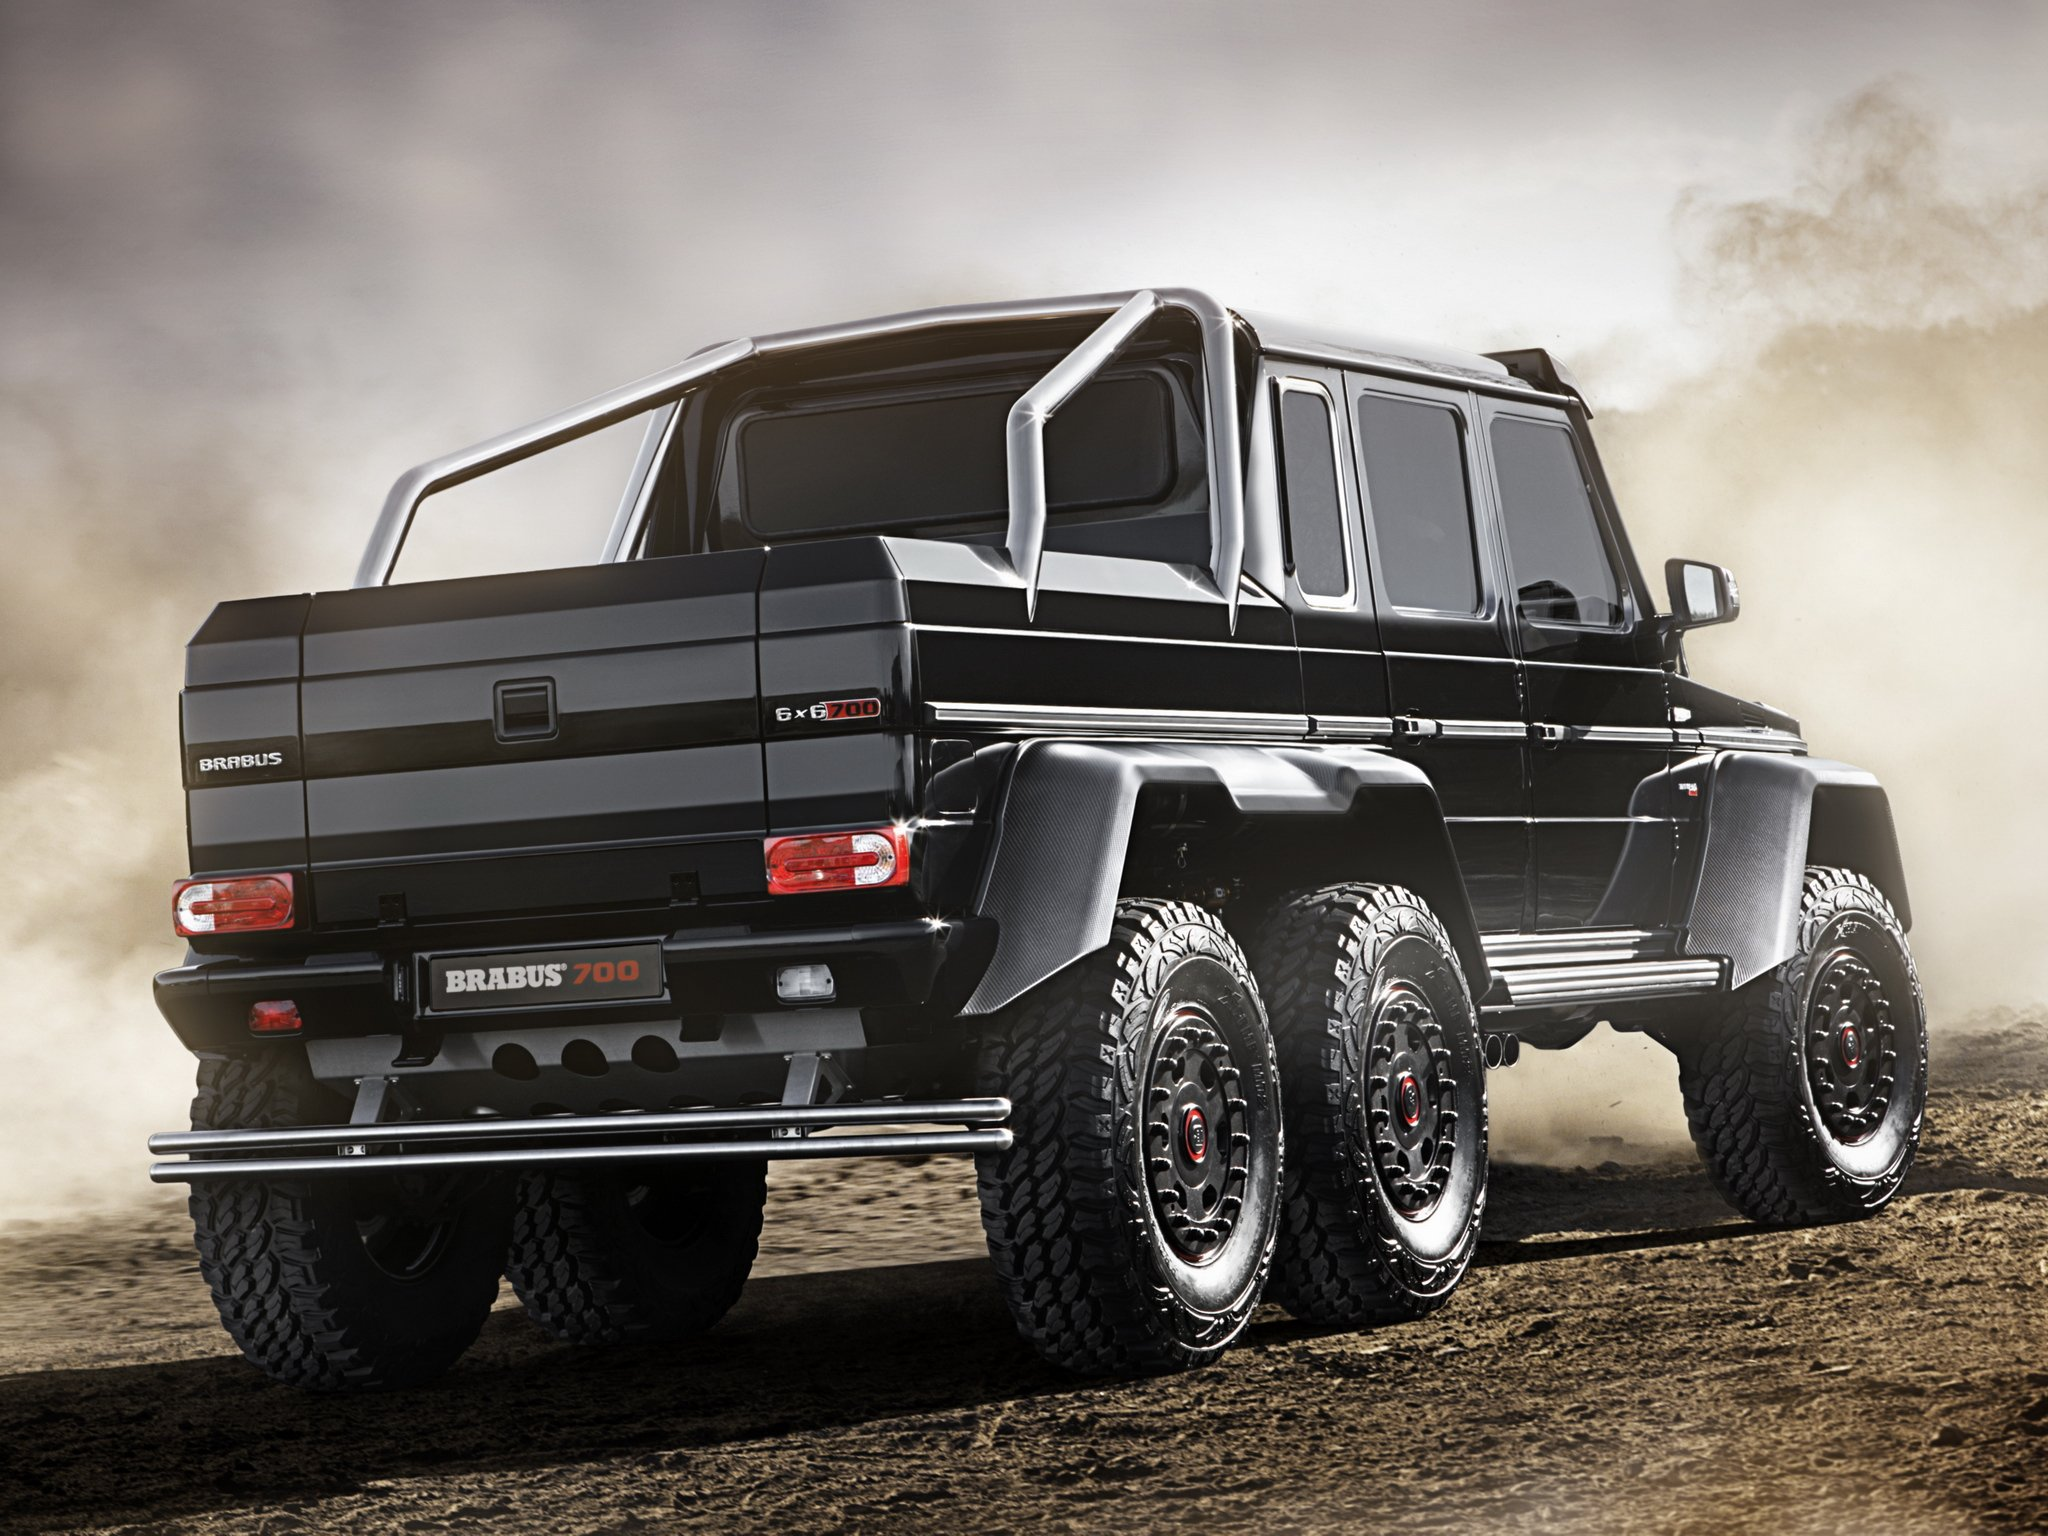 2013 brabus mercedes benz g63 amg 6x6 w463 suv custom offroad tuning pickup g wallpaper 2048x1536 287523 wallpaperup - Mercedes G Amg Custom